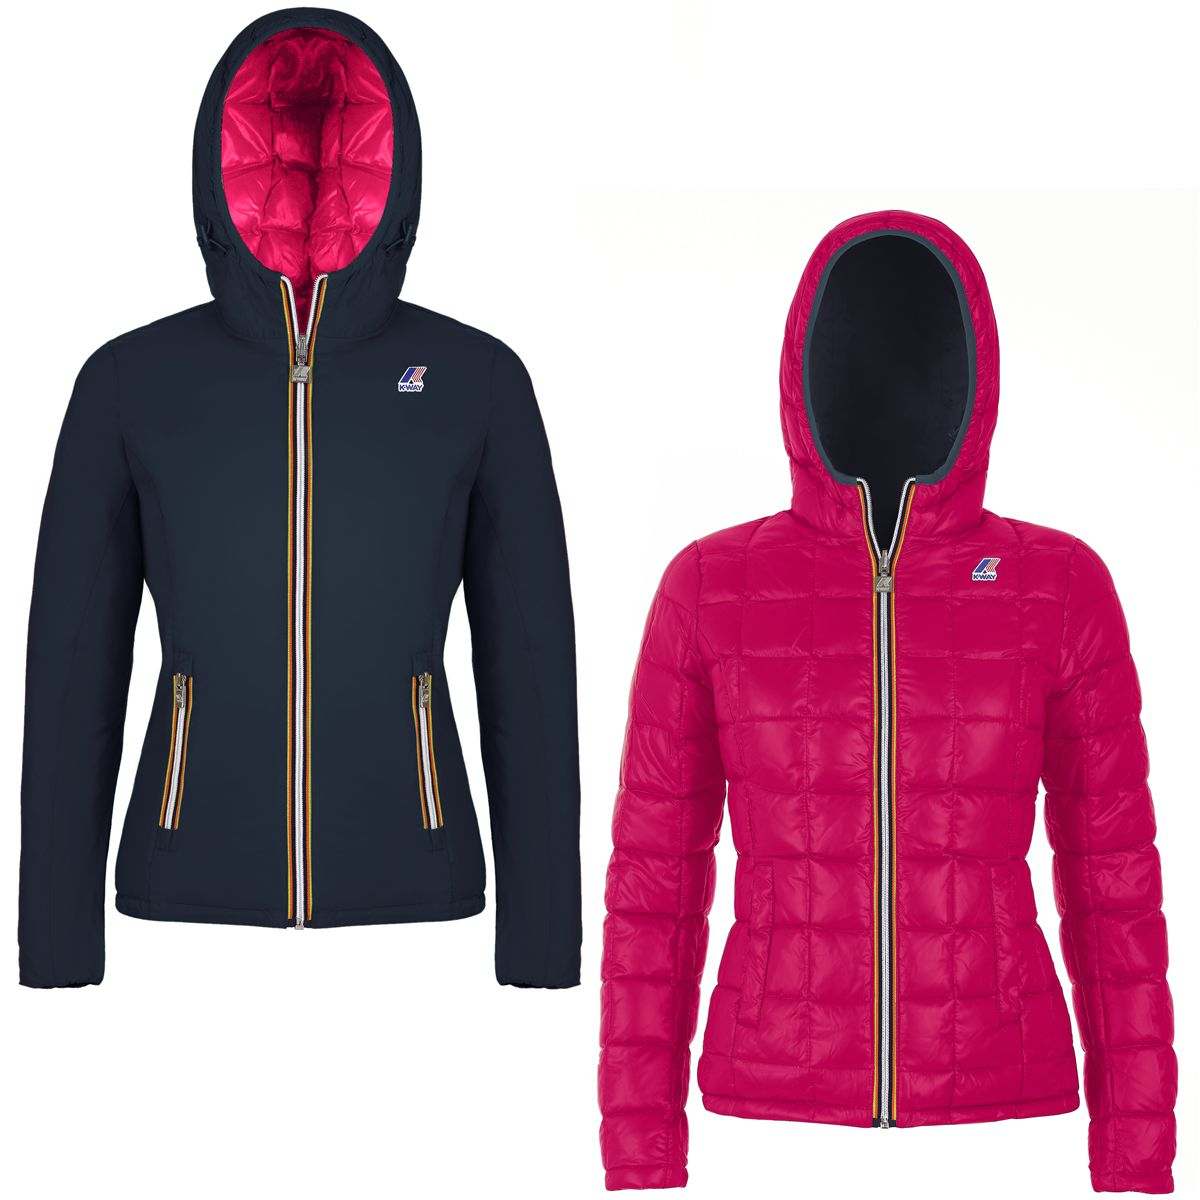 Giubbotto impermeabile K-way donna LILY THERMO PLUS DOUBLE-K002II0